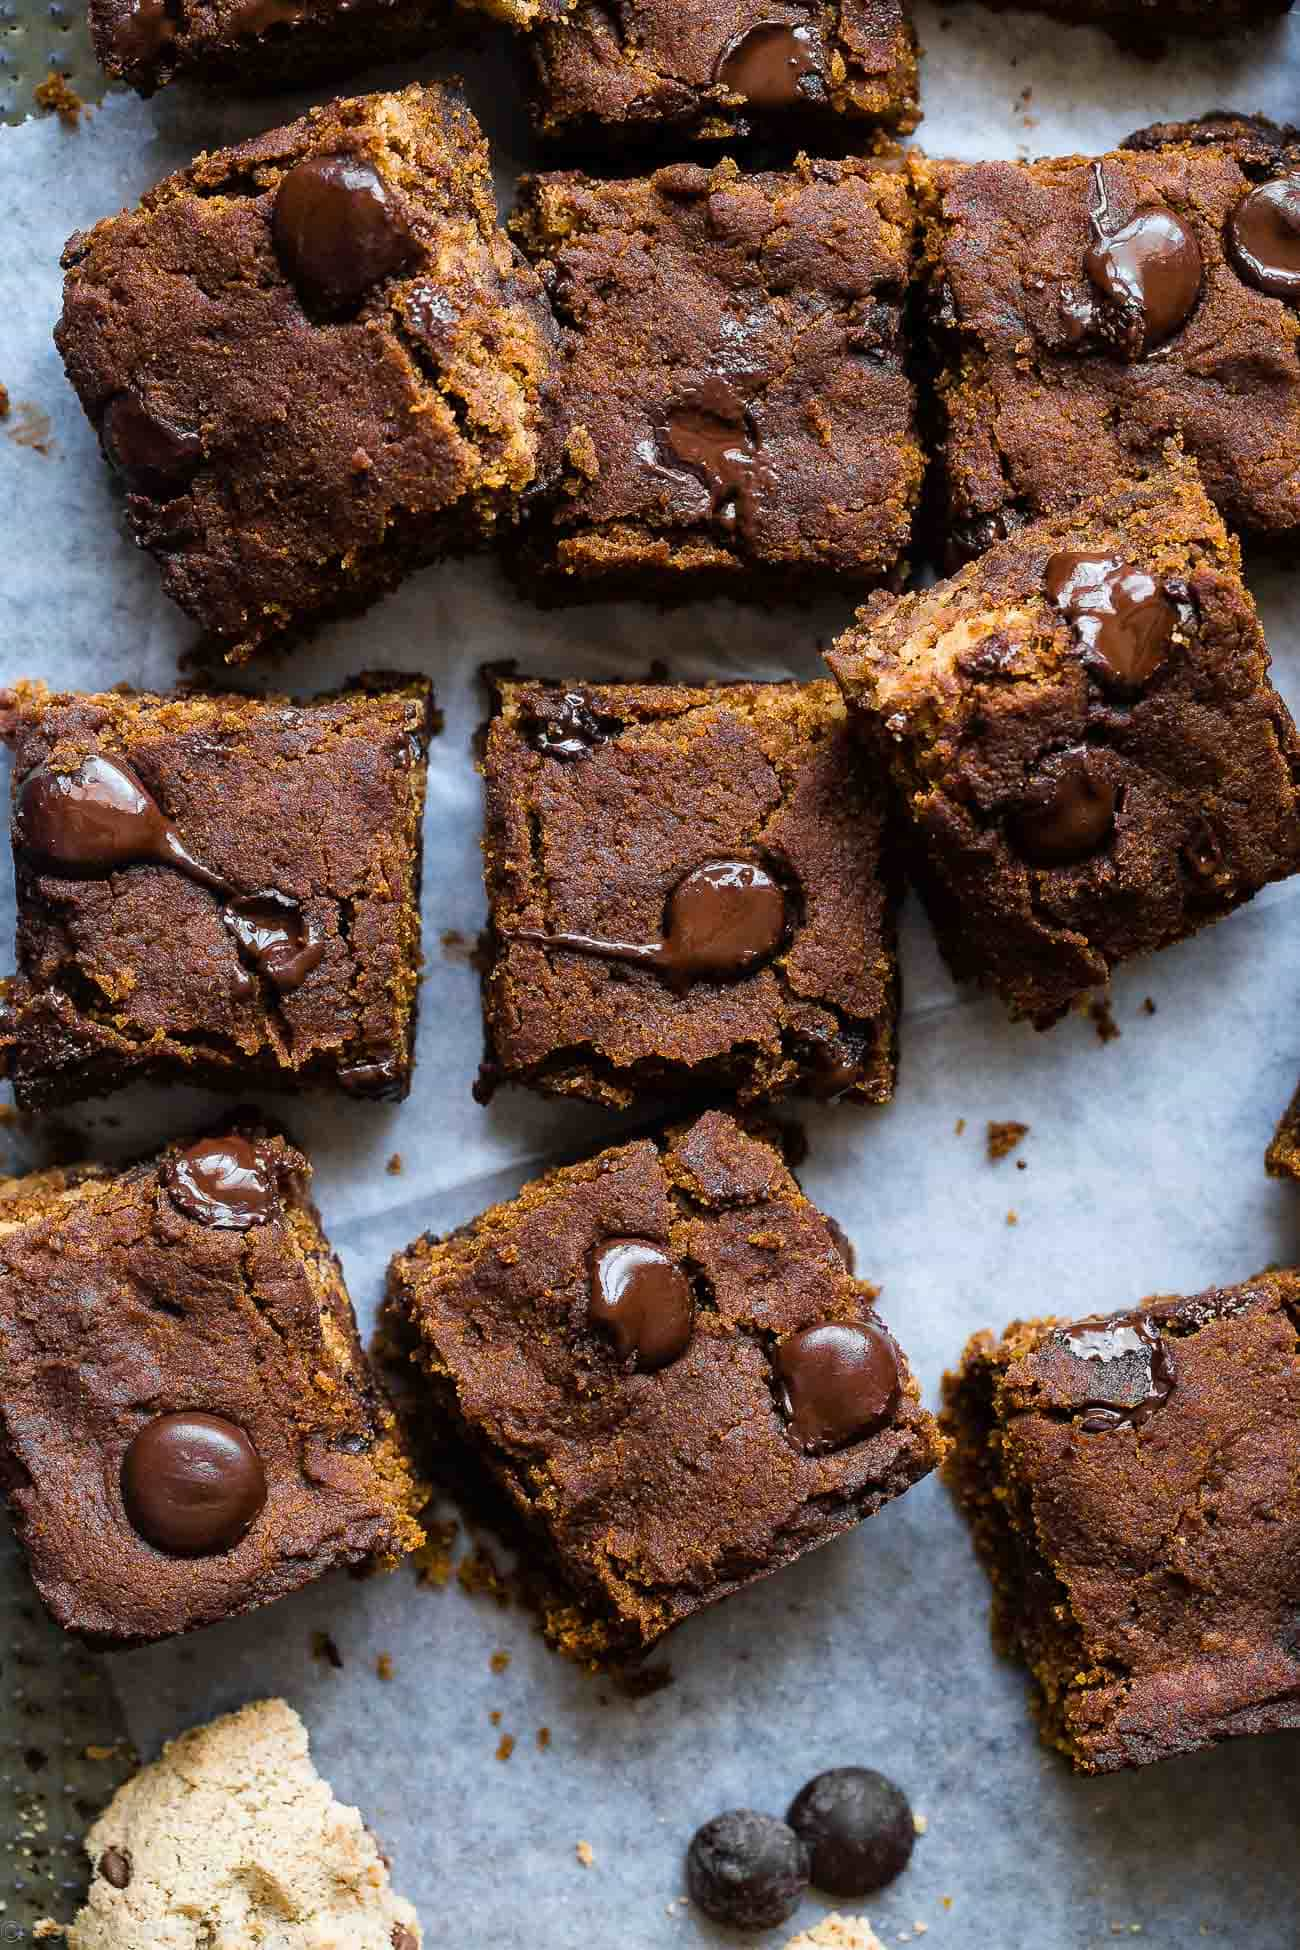 Cookie Stuffed Chewy Pumpkin Blondies -Cookies are baked right inside these healthier pumpkin brookies! They're so dense and chewy you'll never know they're gluten and dairy free! | Foodfaithfitness.com | @FoodFaithFit